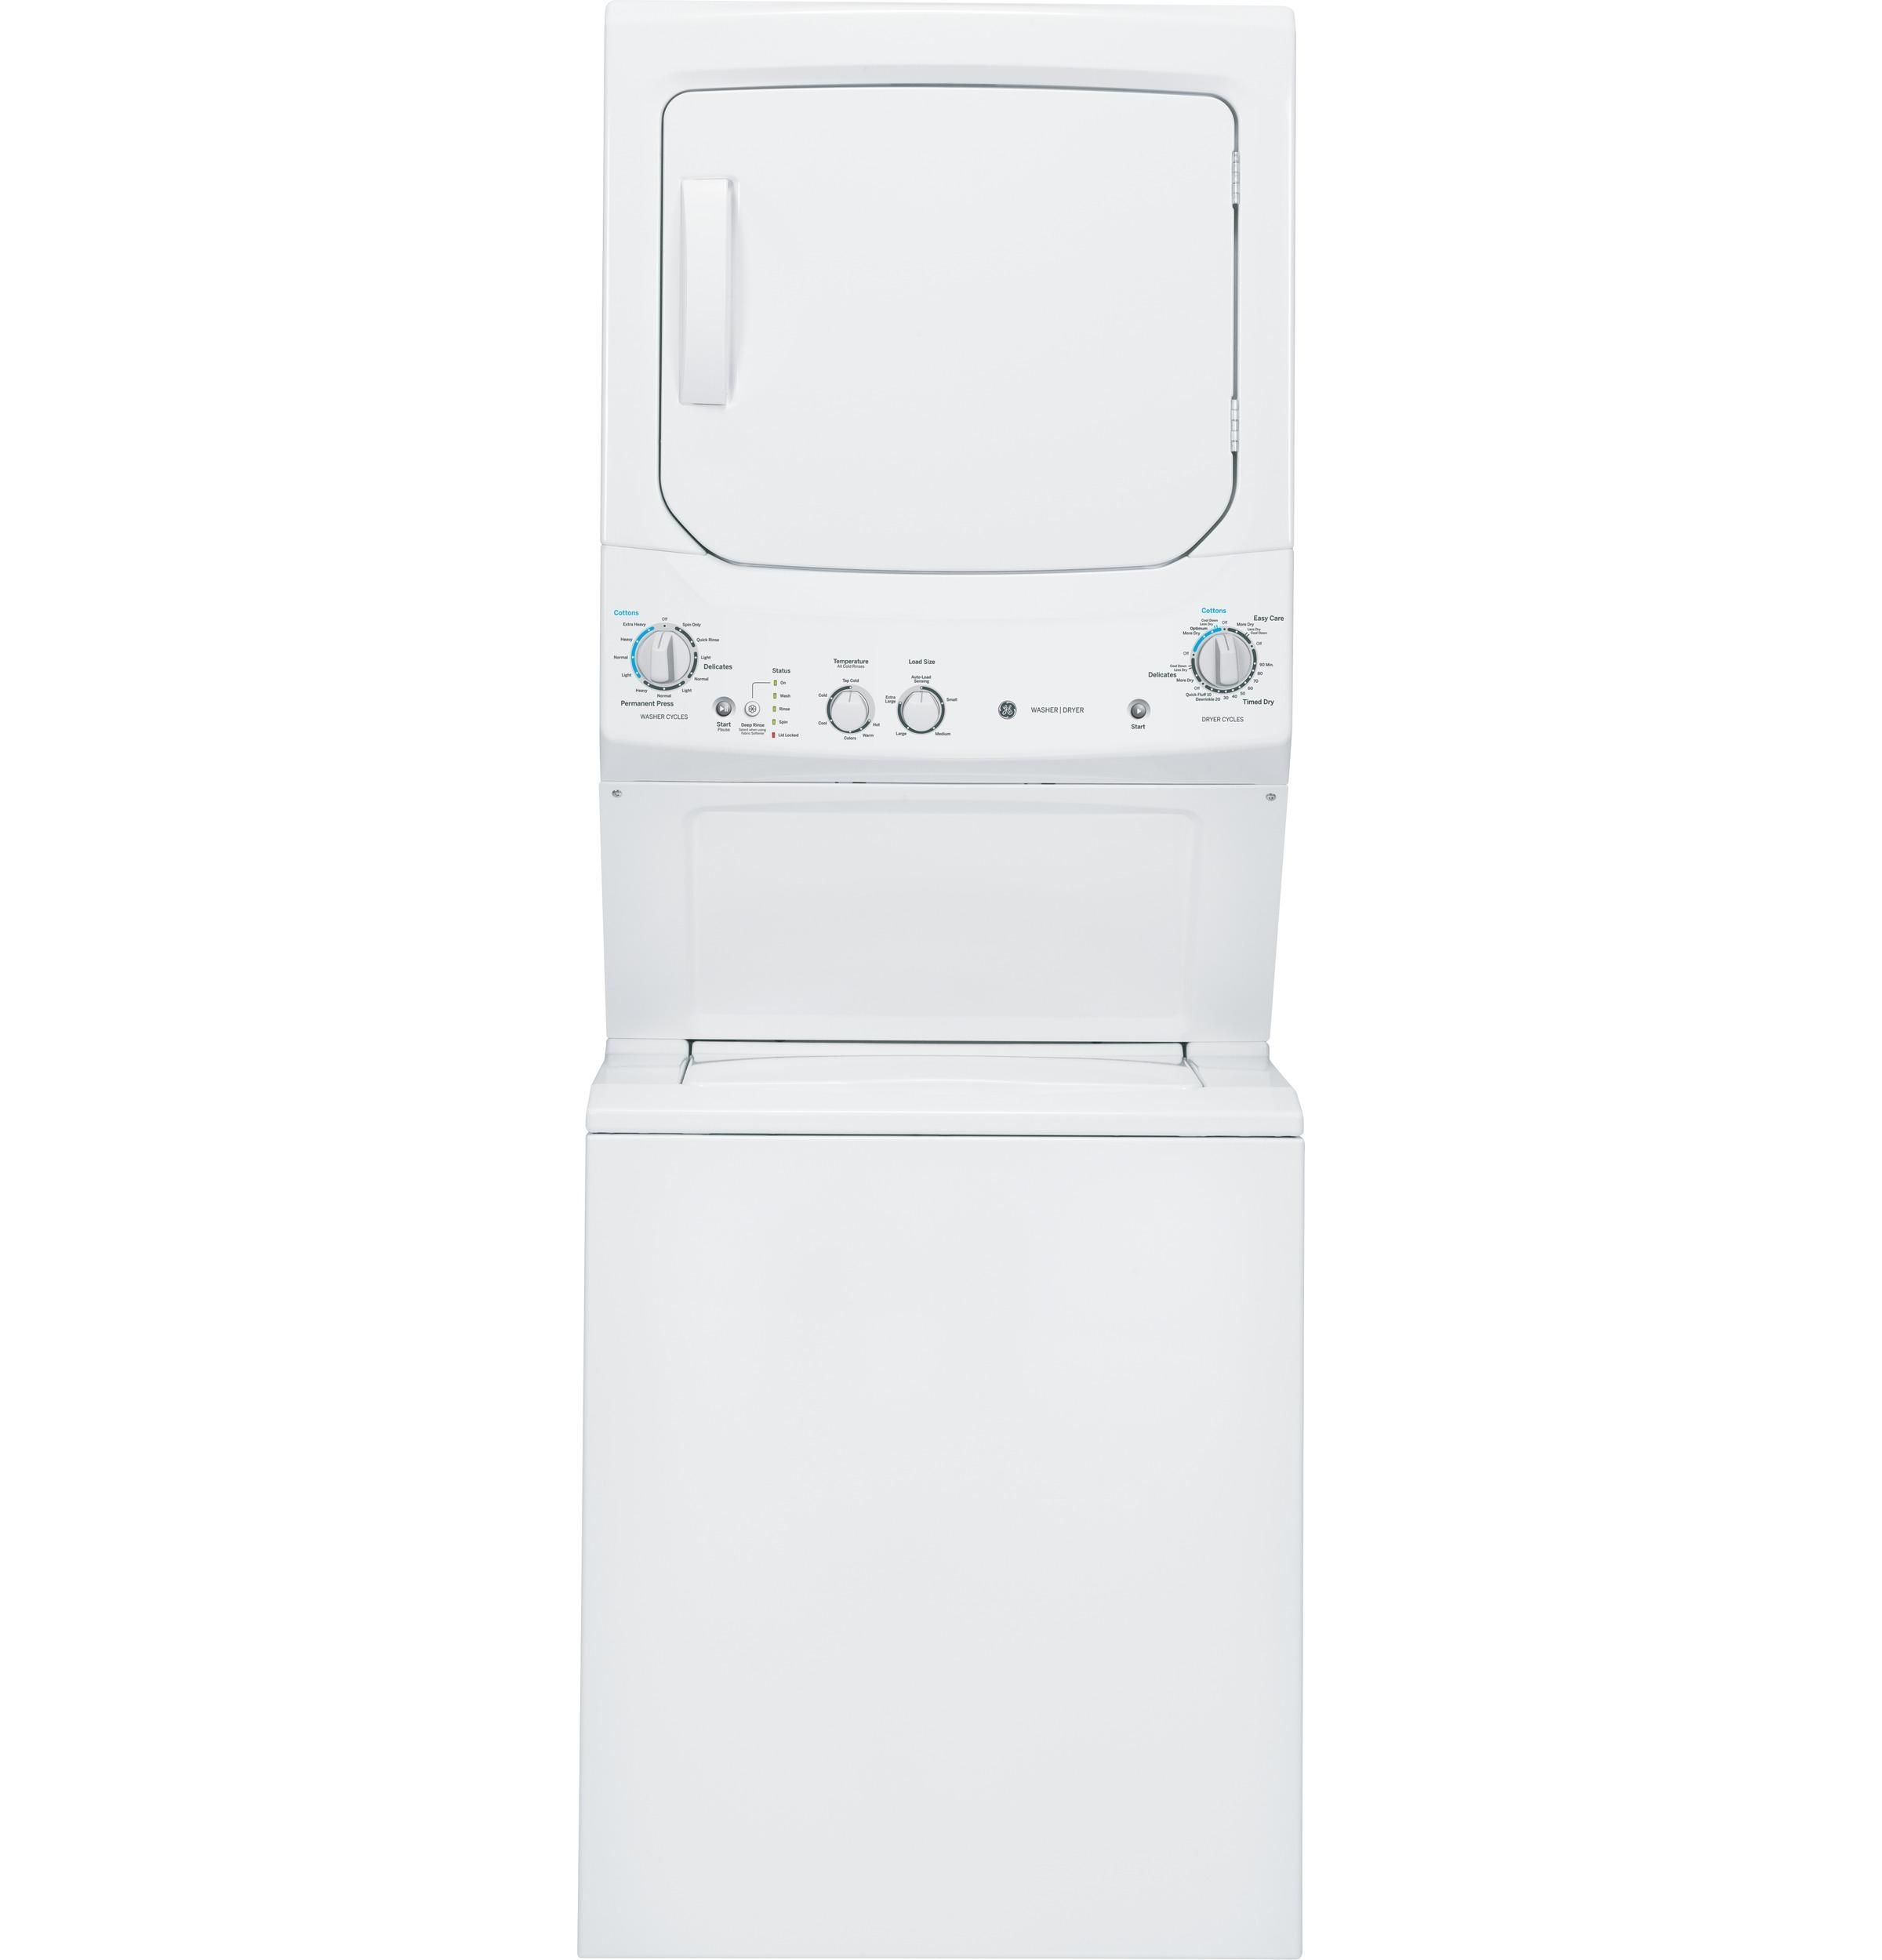 GE APPLIANCES GUD27ESSJWW